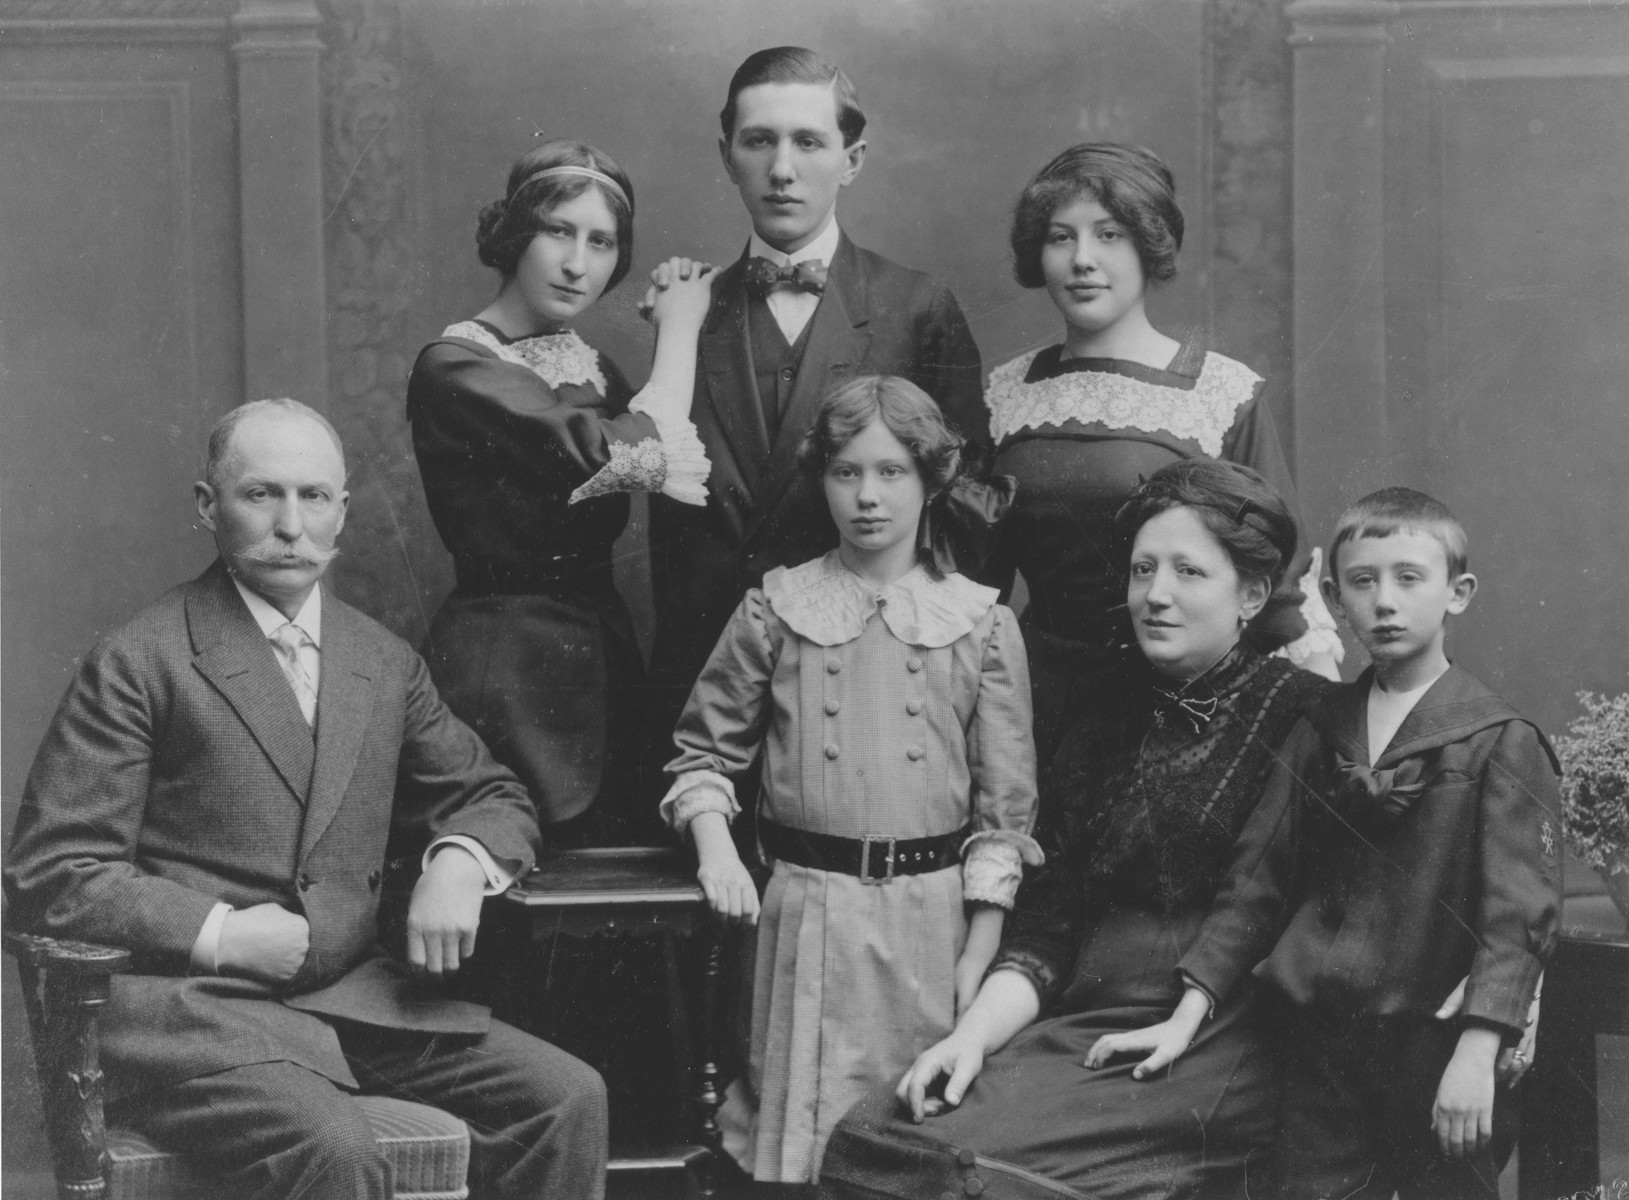 Portrait of the Brod family in Prague.  Seated from left to right are: Josef, Irma, Mathilda and Leo Brod.  Standing are Frieda, Karel and Anna.